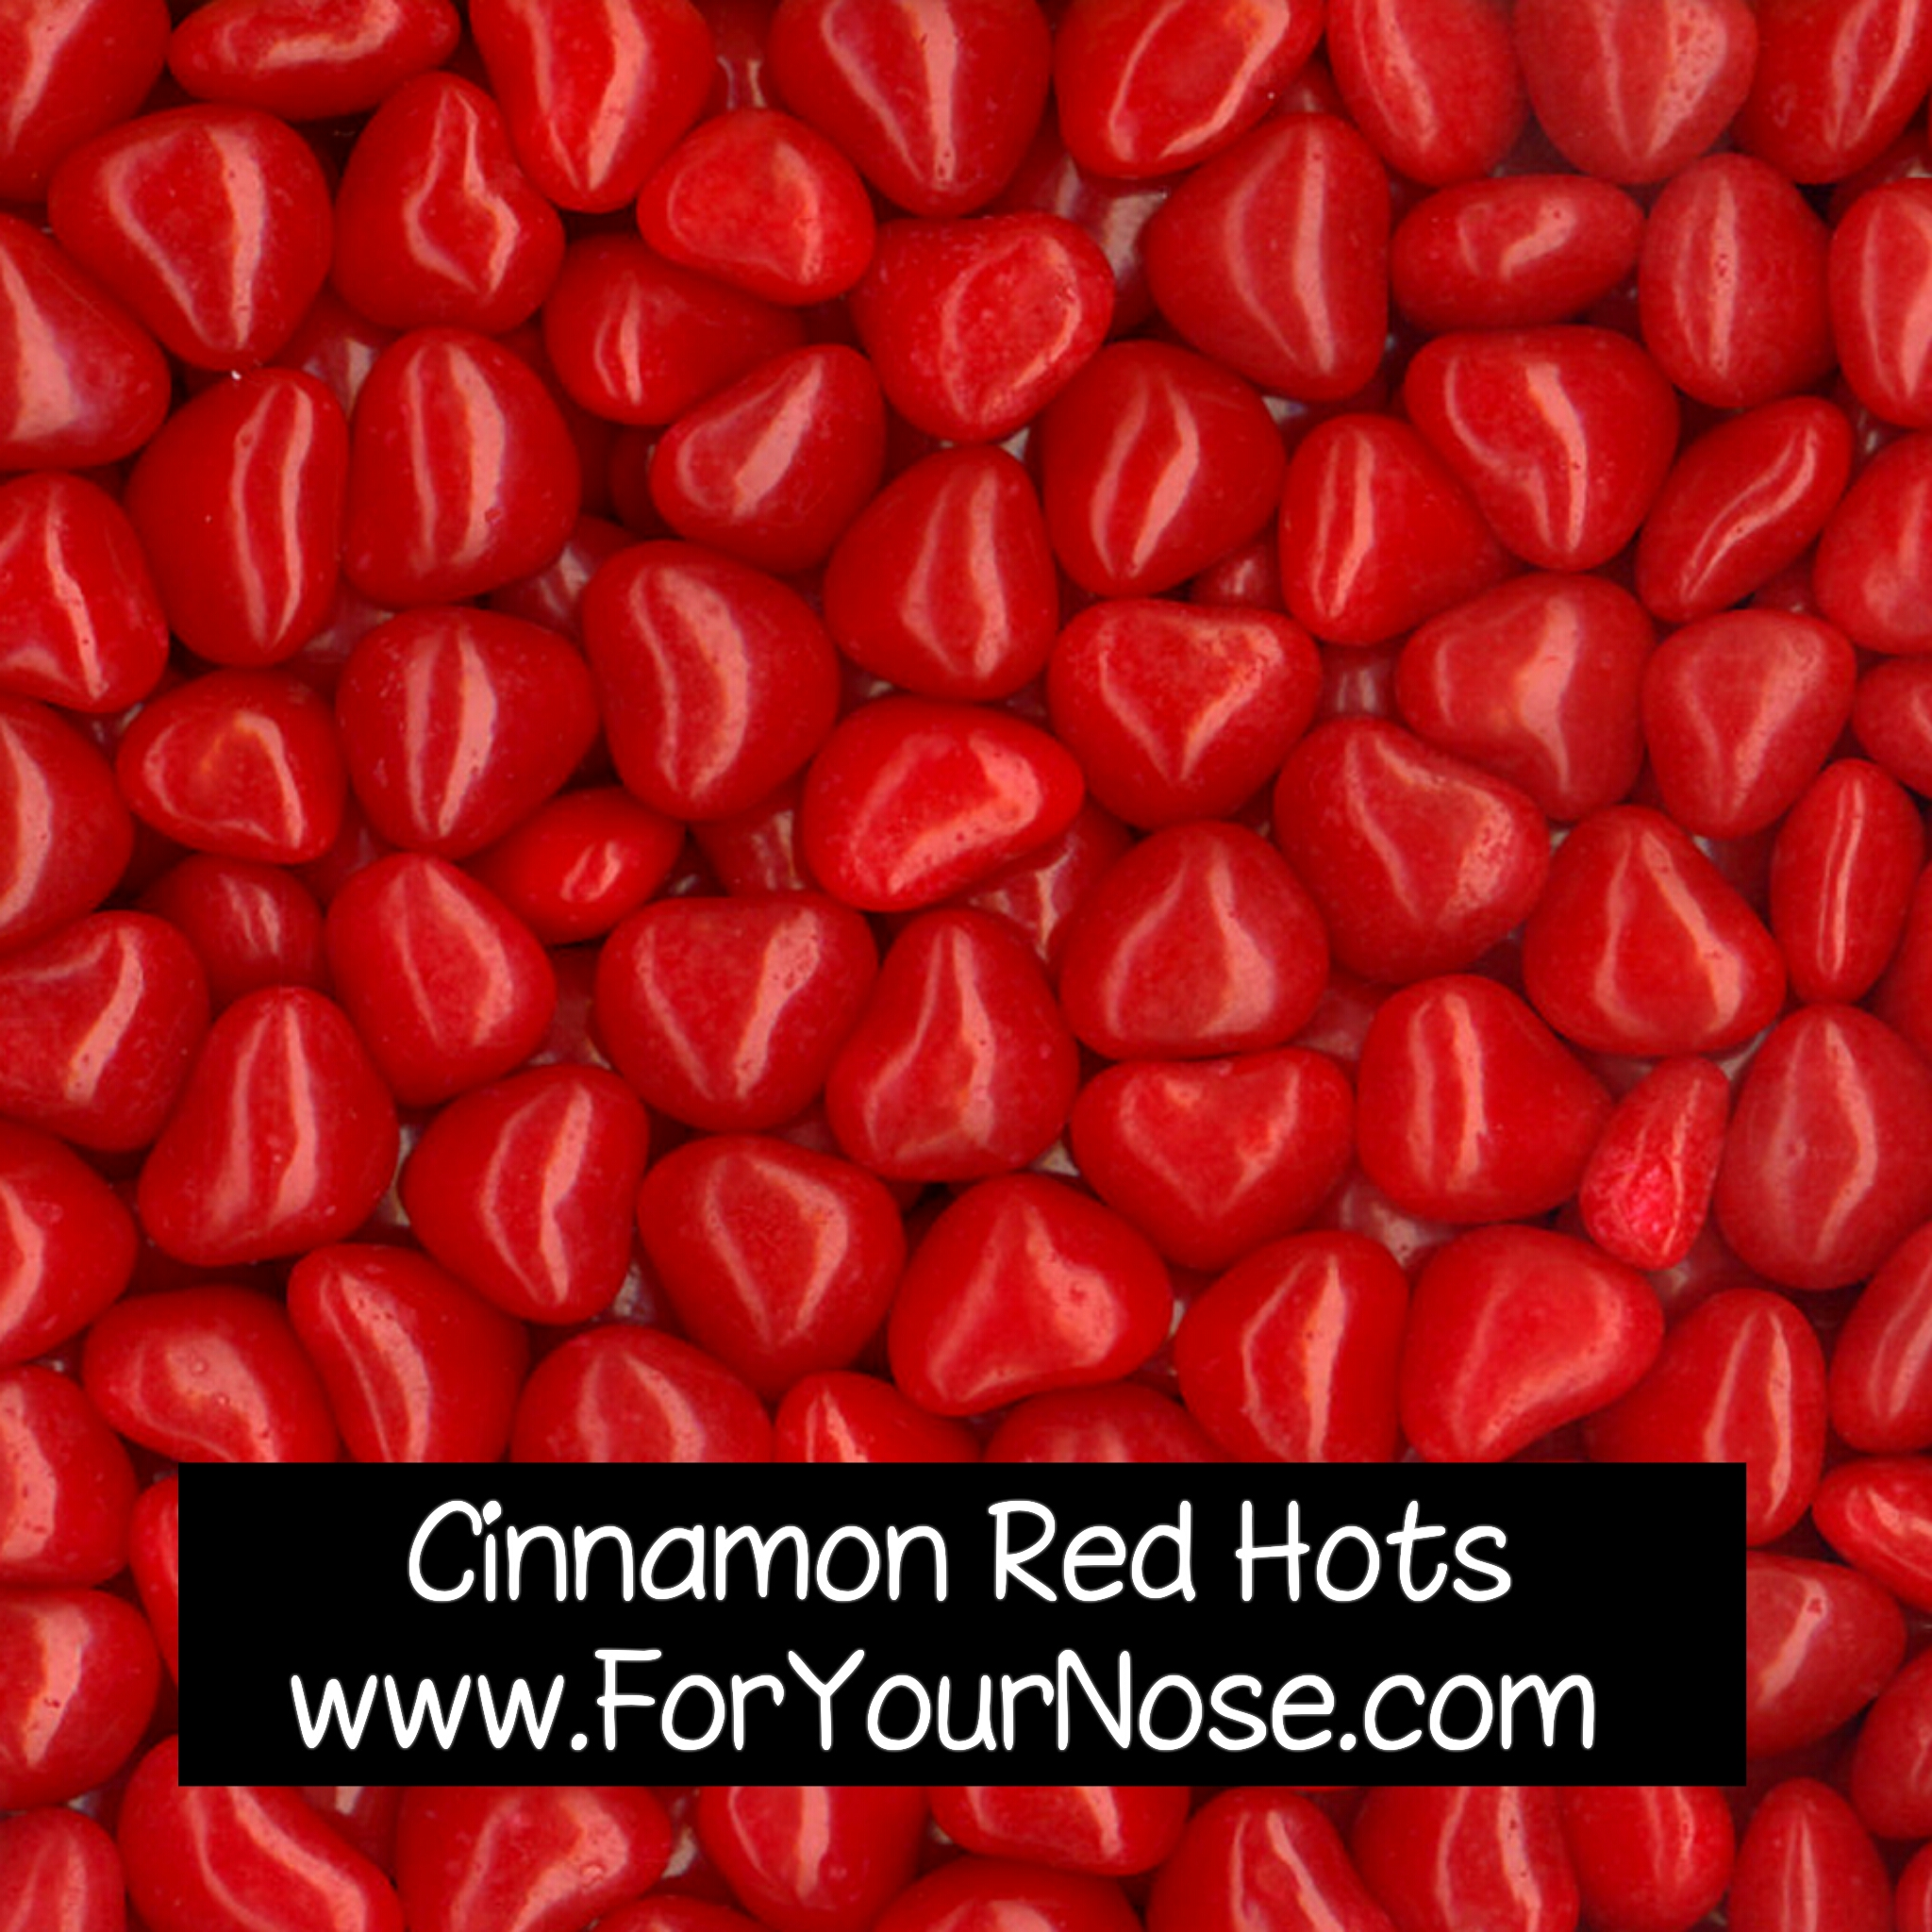 cinnamon red hots fragrance